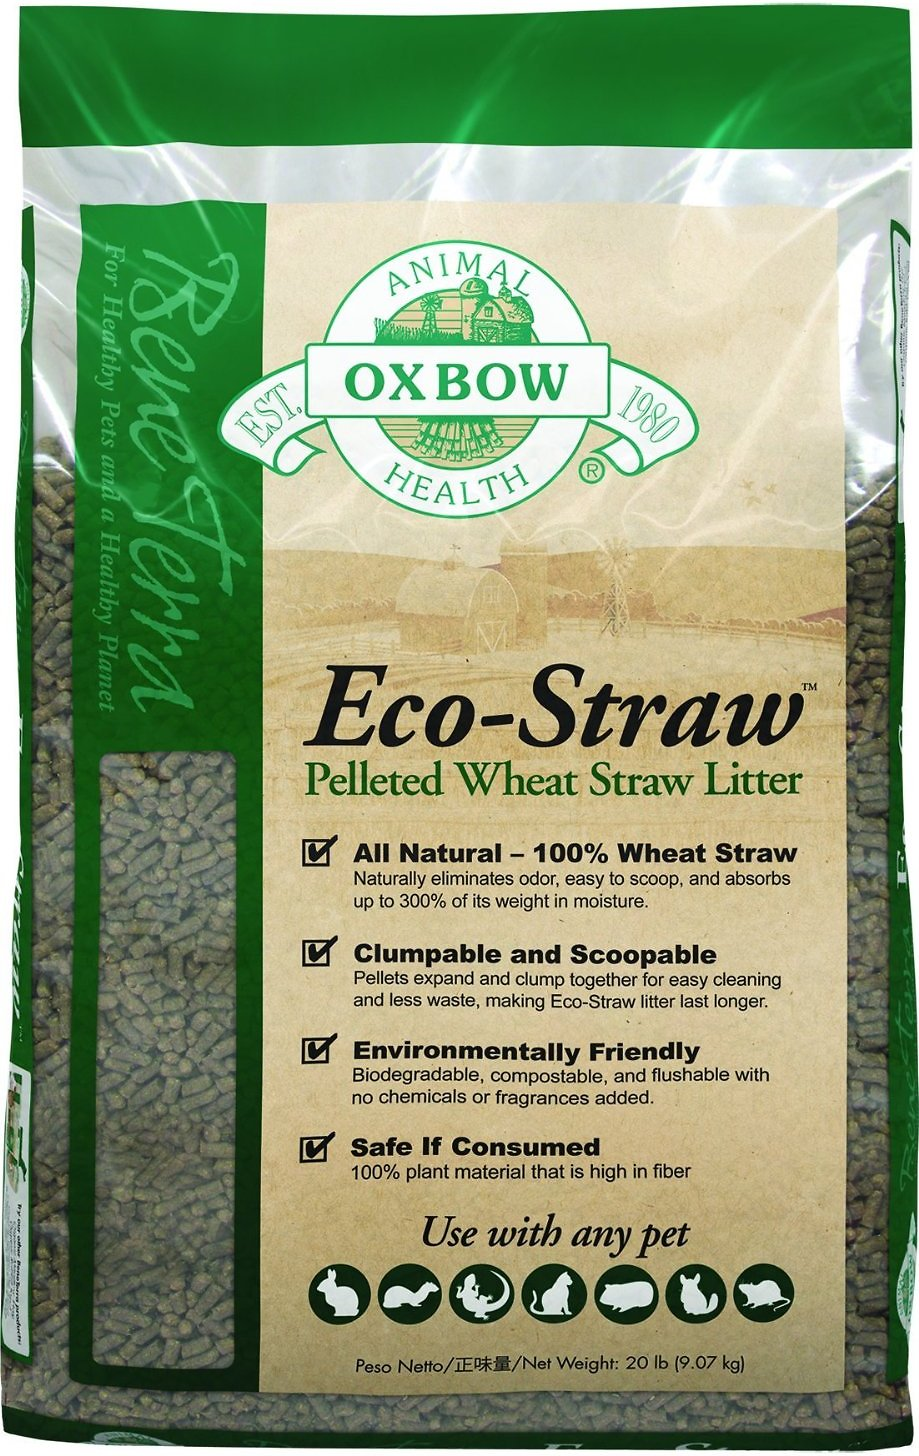 Oxbow Bene Terra Eco-Straw Pelleted Wheat Straw Small Animal Litter Image